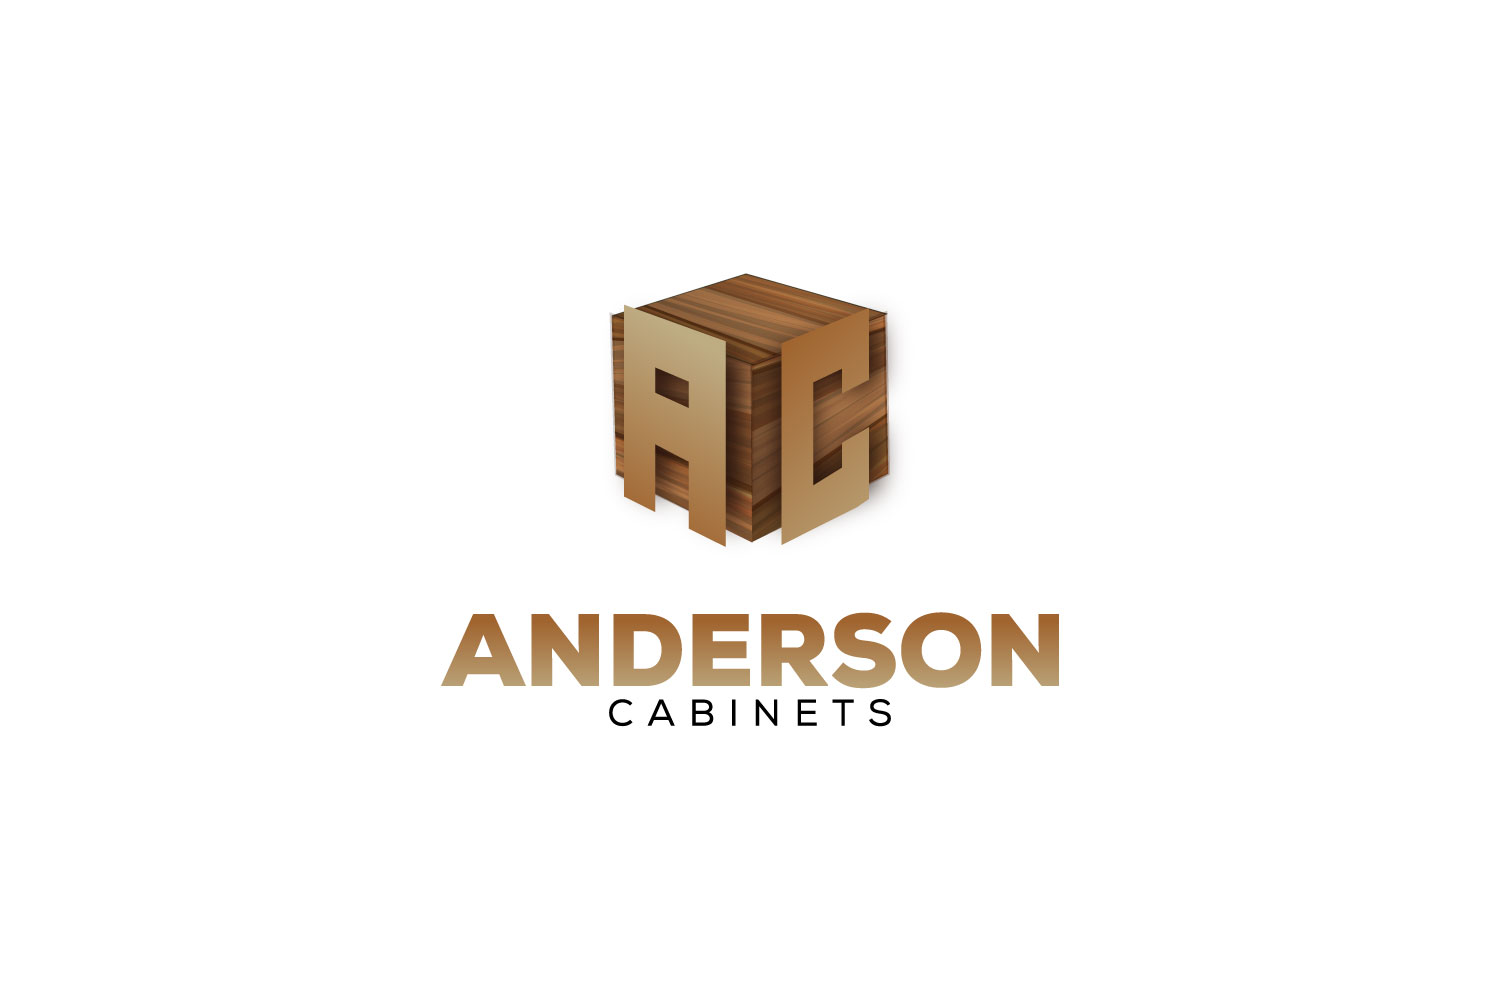 Logo Design By Criterion For Anderson Cabinets   Design #17108472